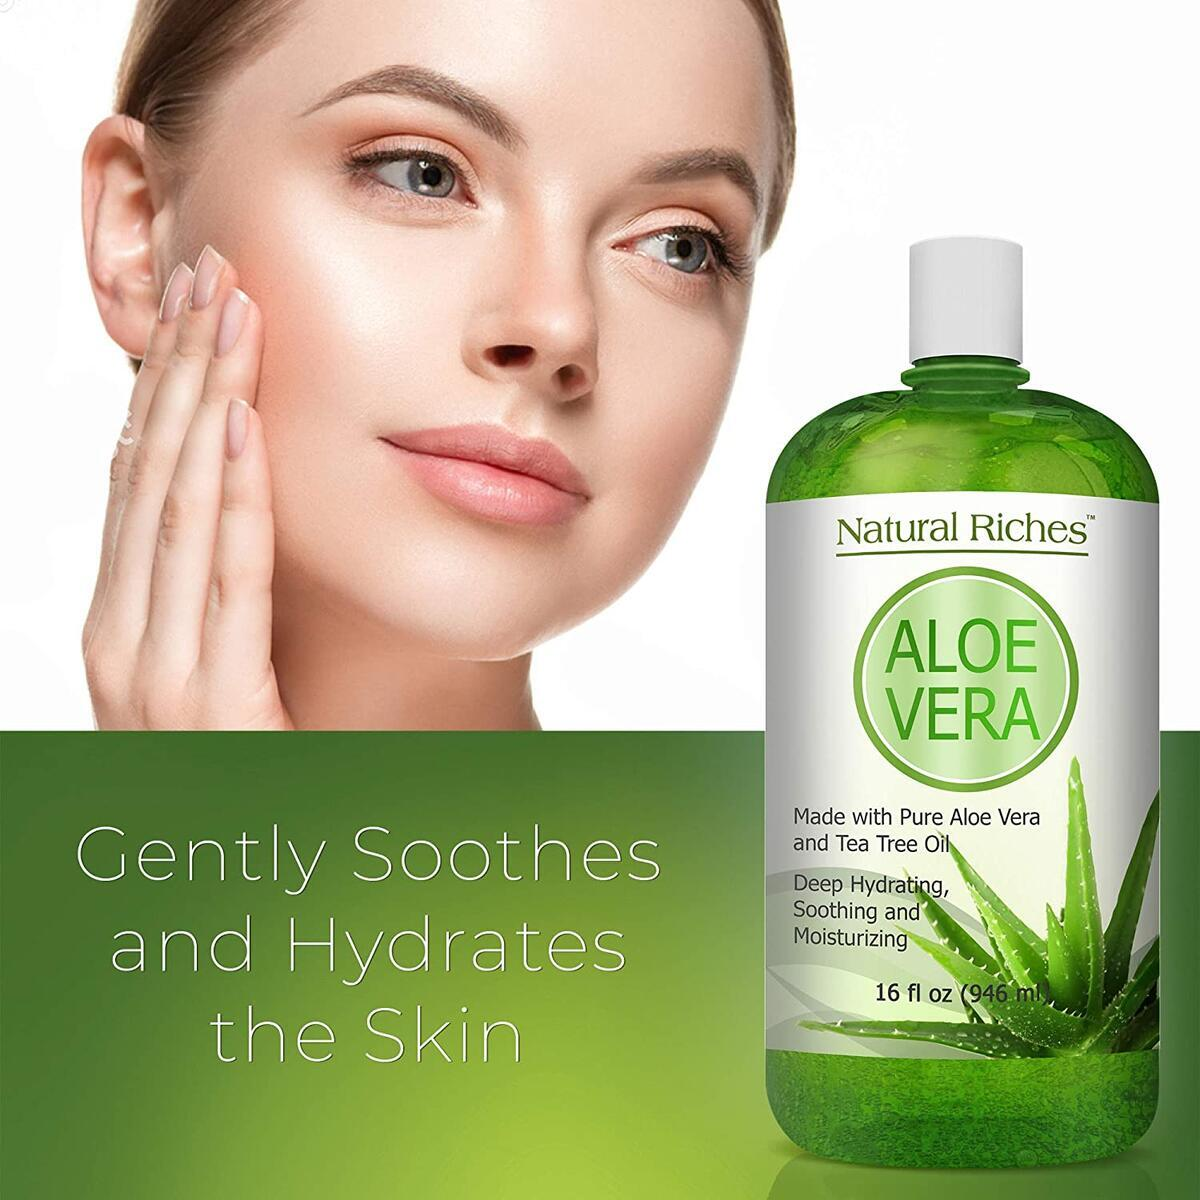 Natural Riches Pure Aloe Vera Gel Lotion- for Face & Dry Skin Helps with Cold Sores, Scars, Bug Bites, Sunburn Relief, Razor Rash, Bumps, Excellent DIY Body Lotion Skincare